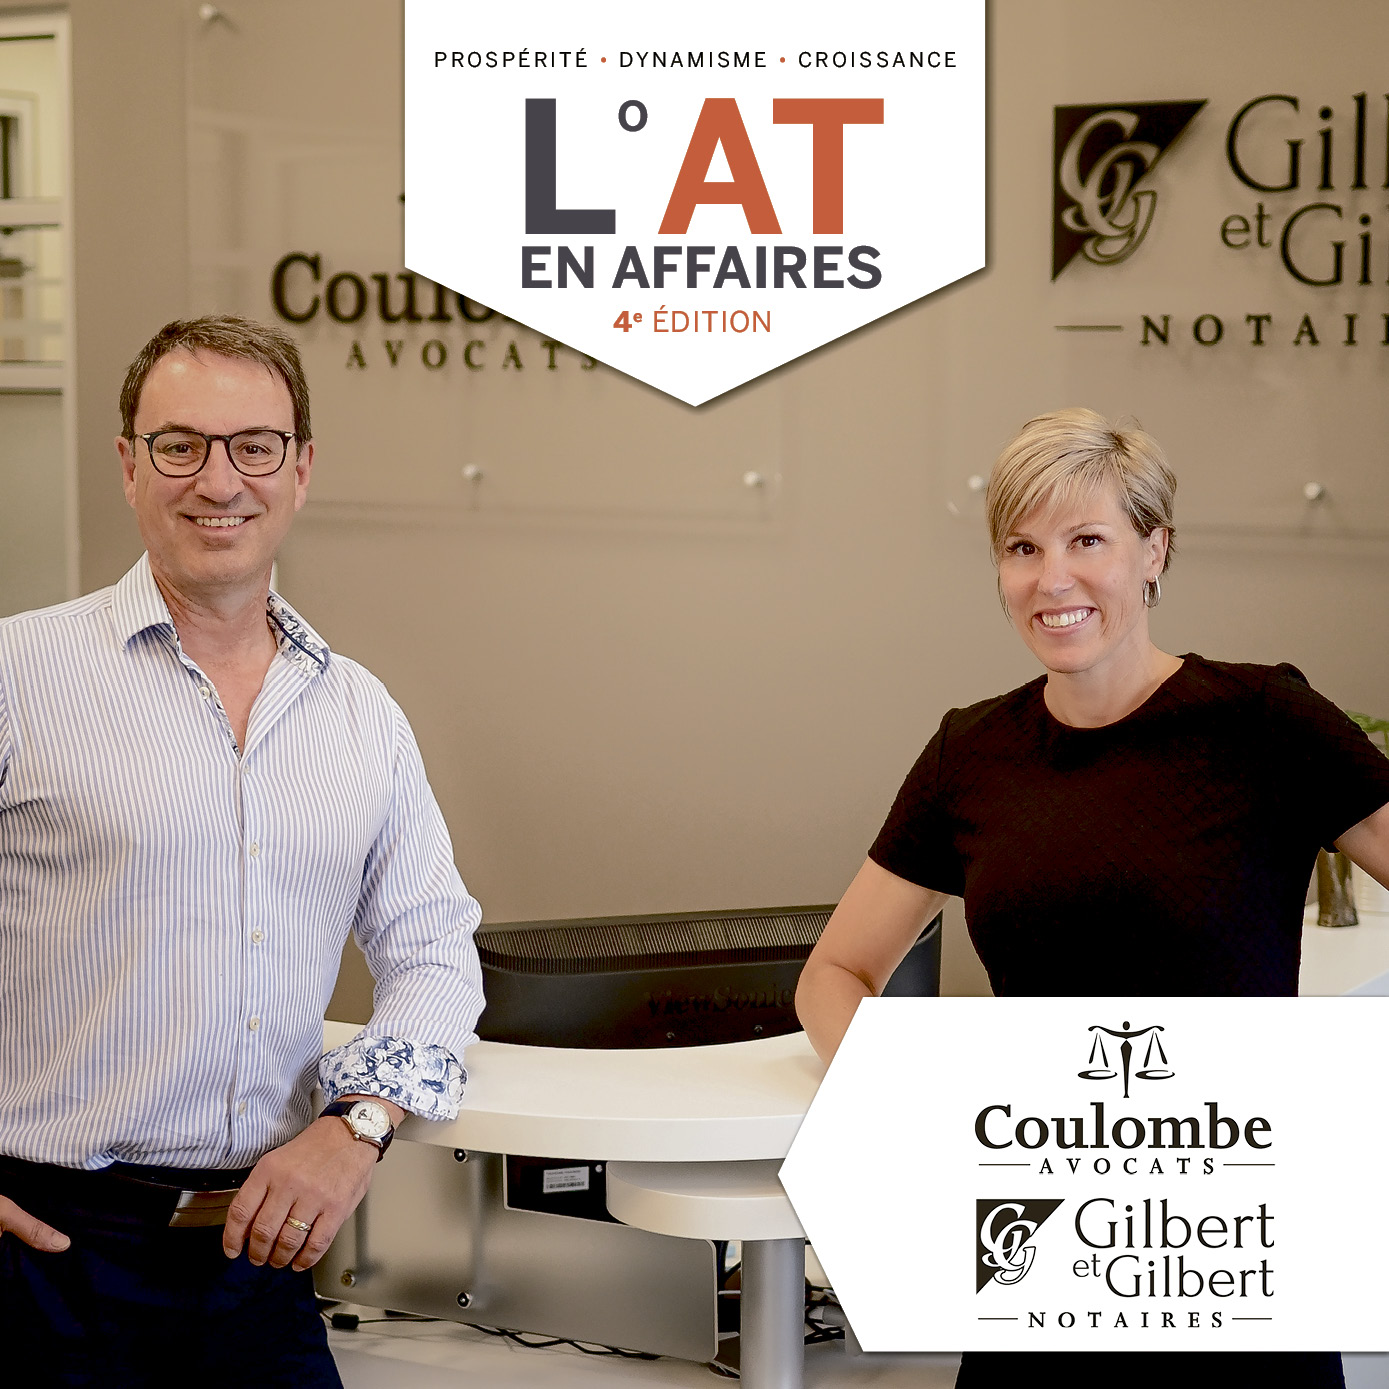 COULOMBE ET GILBERT